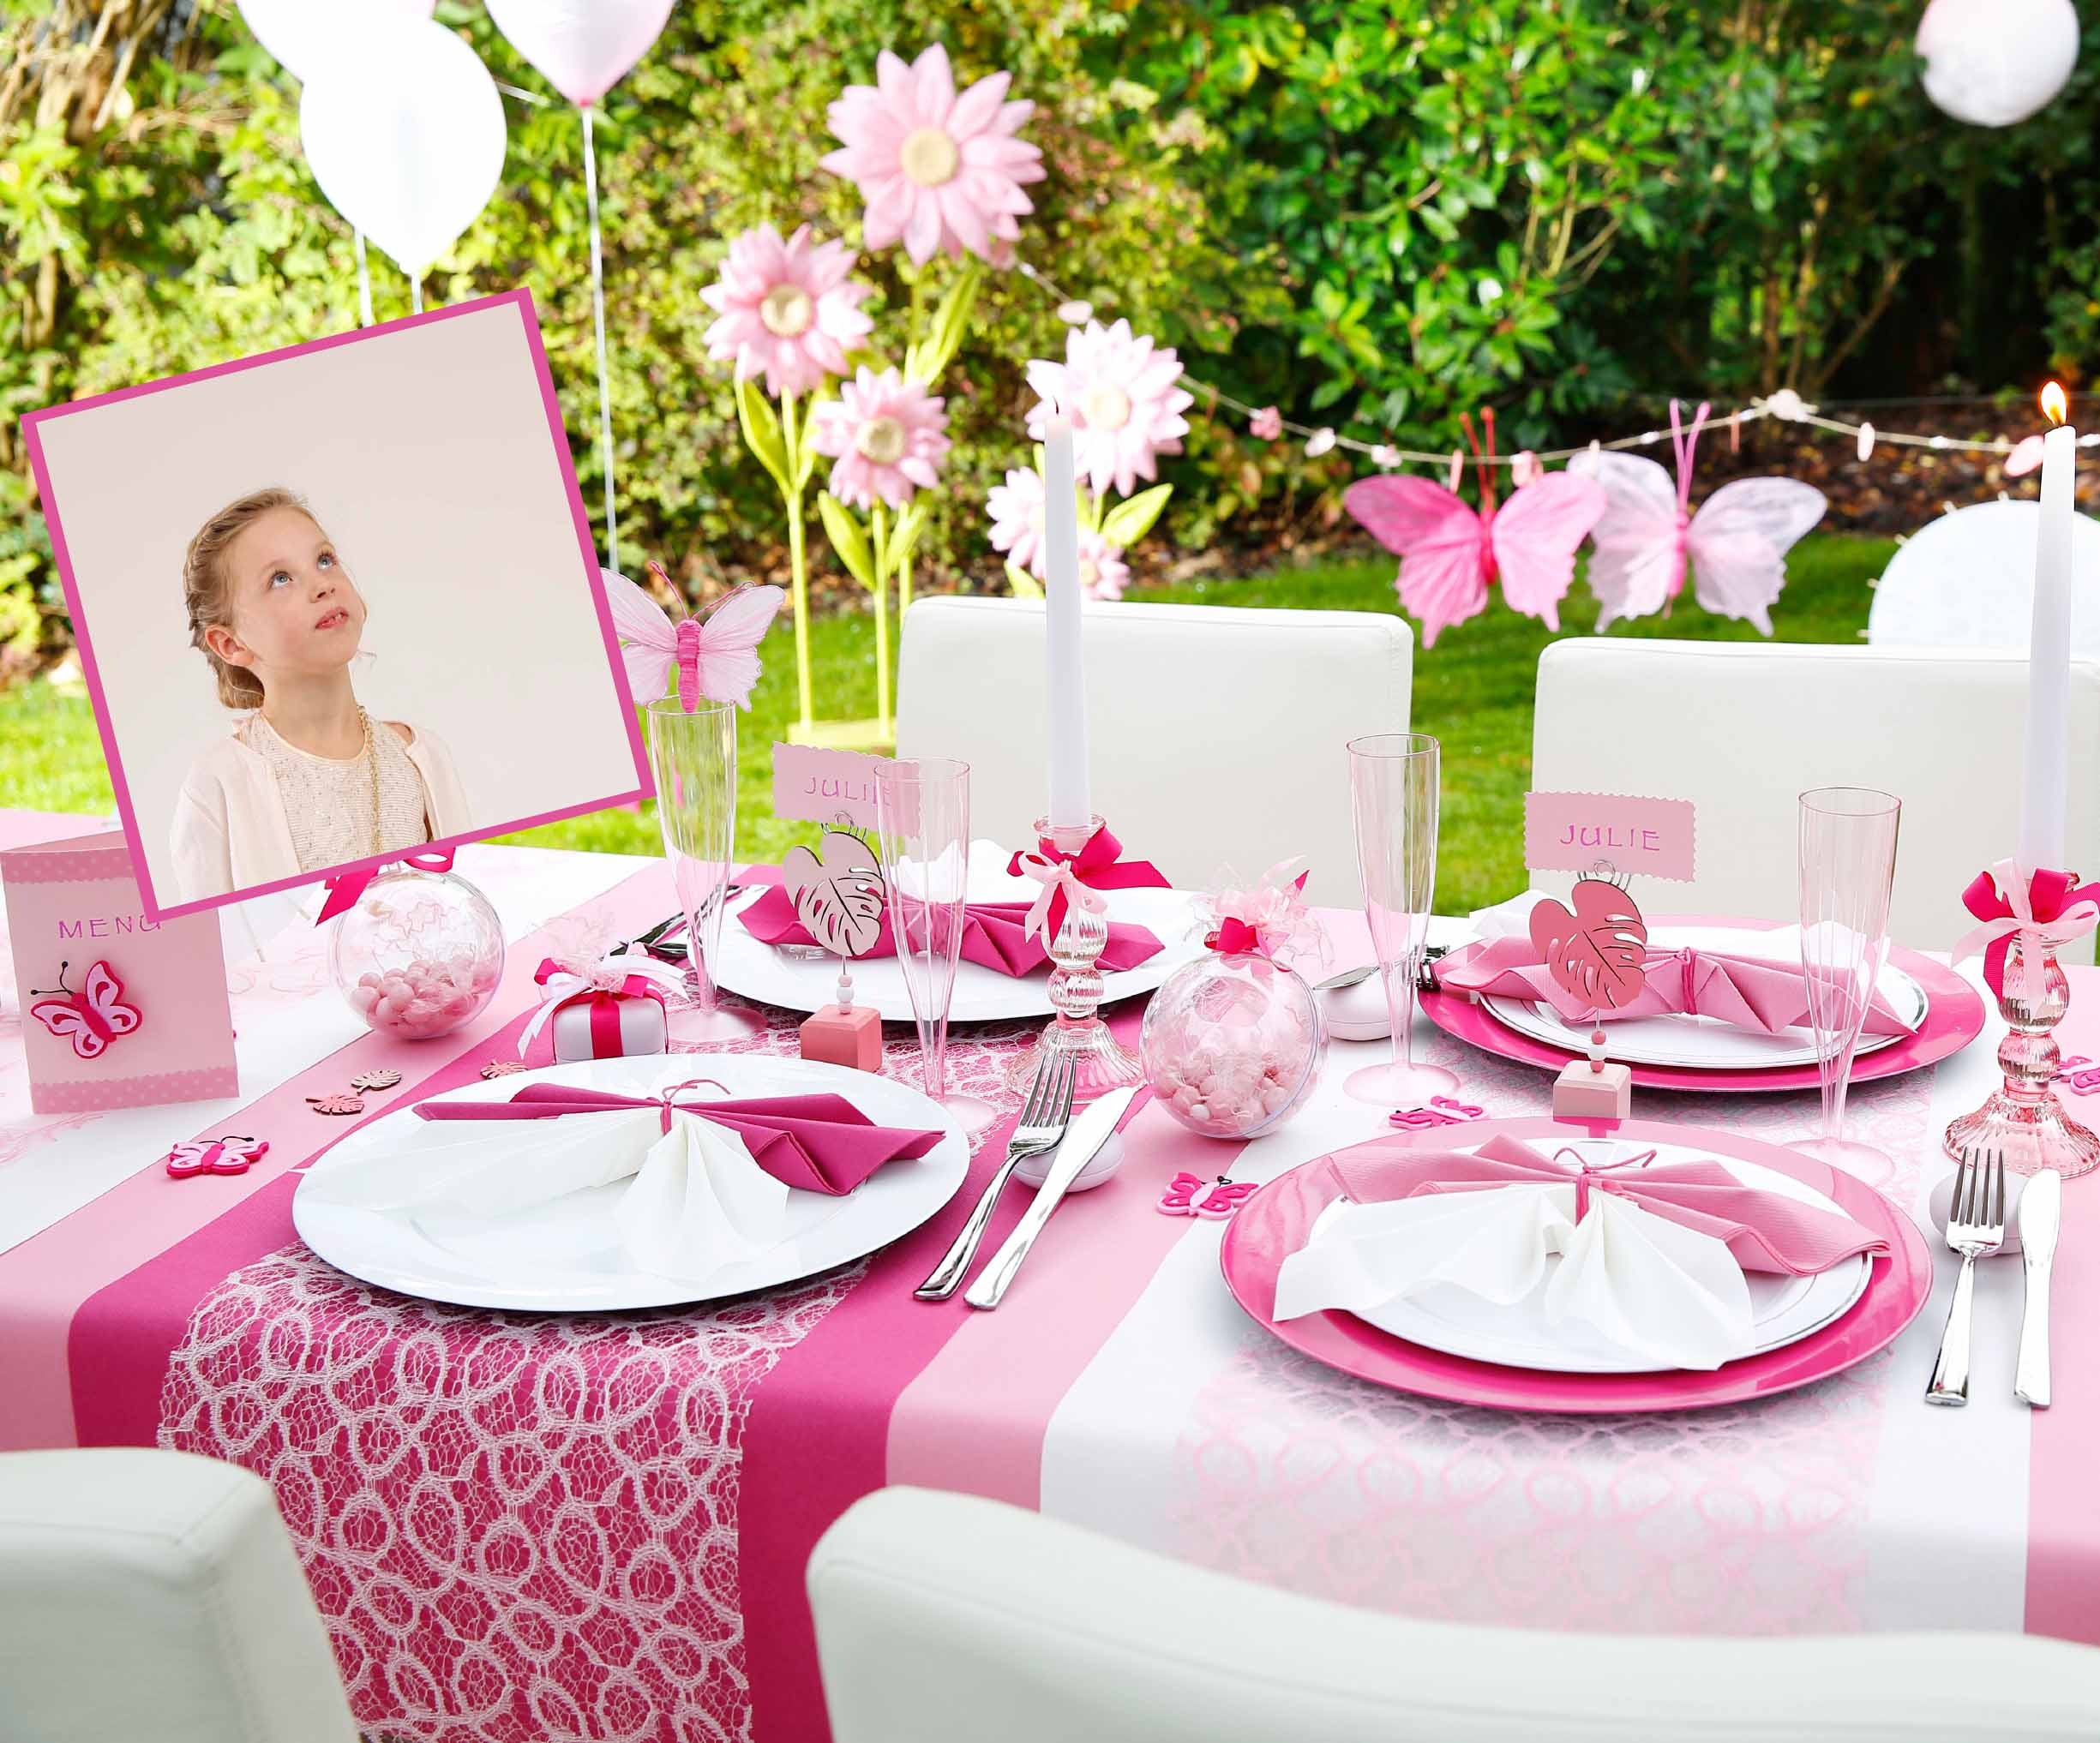 Mijn communie of lentefeest wordt een fantastisch feest ava - Decoration de table pour communion fille ...